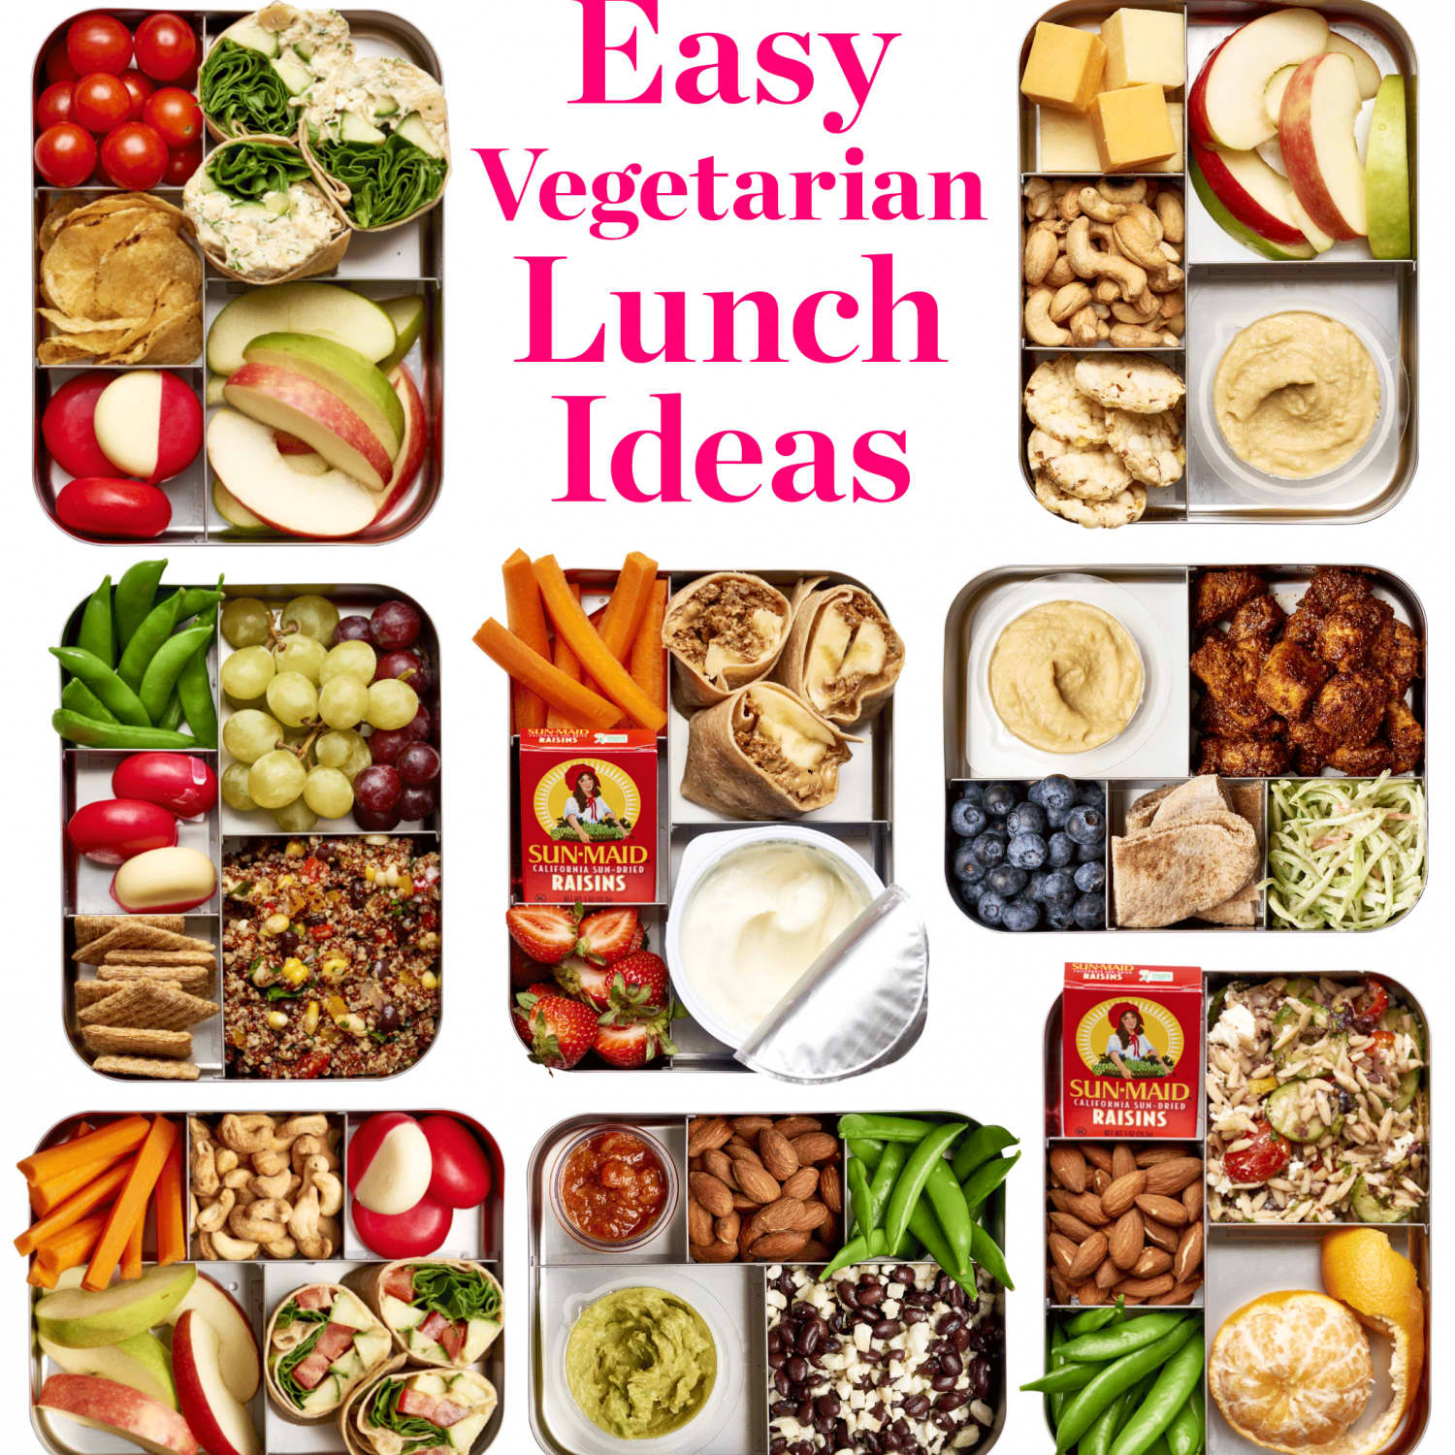 Easy Vegetarian Lunch Ideas | Kitchn - recipes quick and easy vegetarian